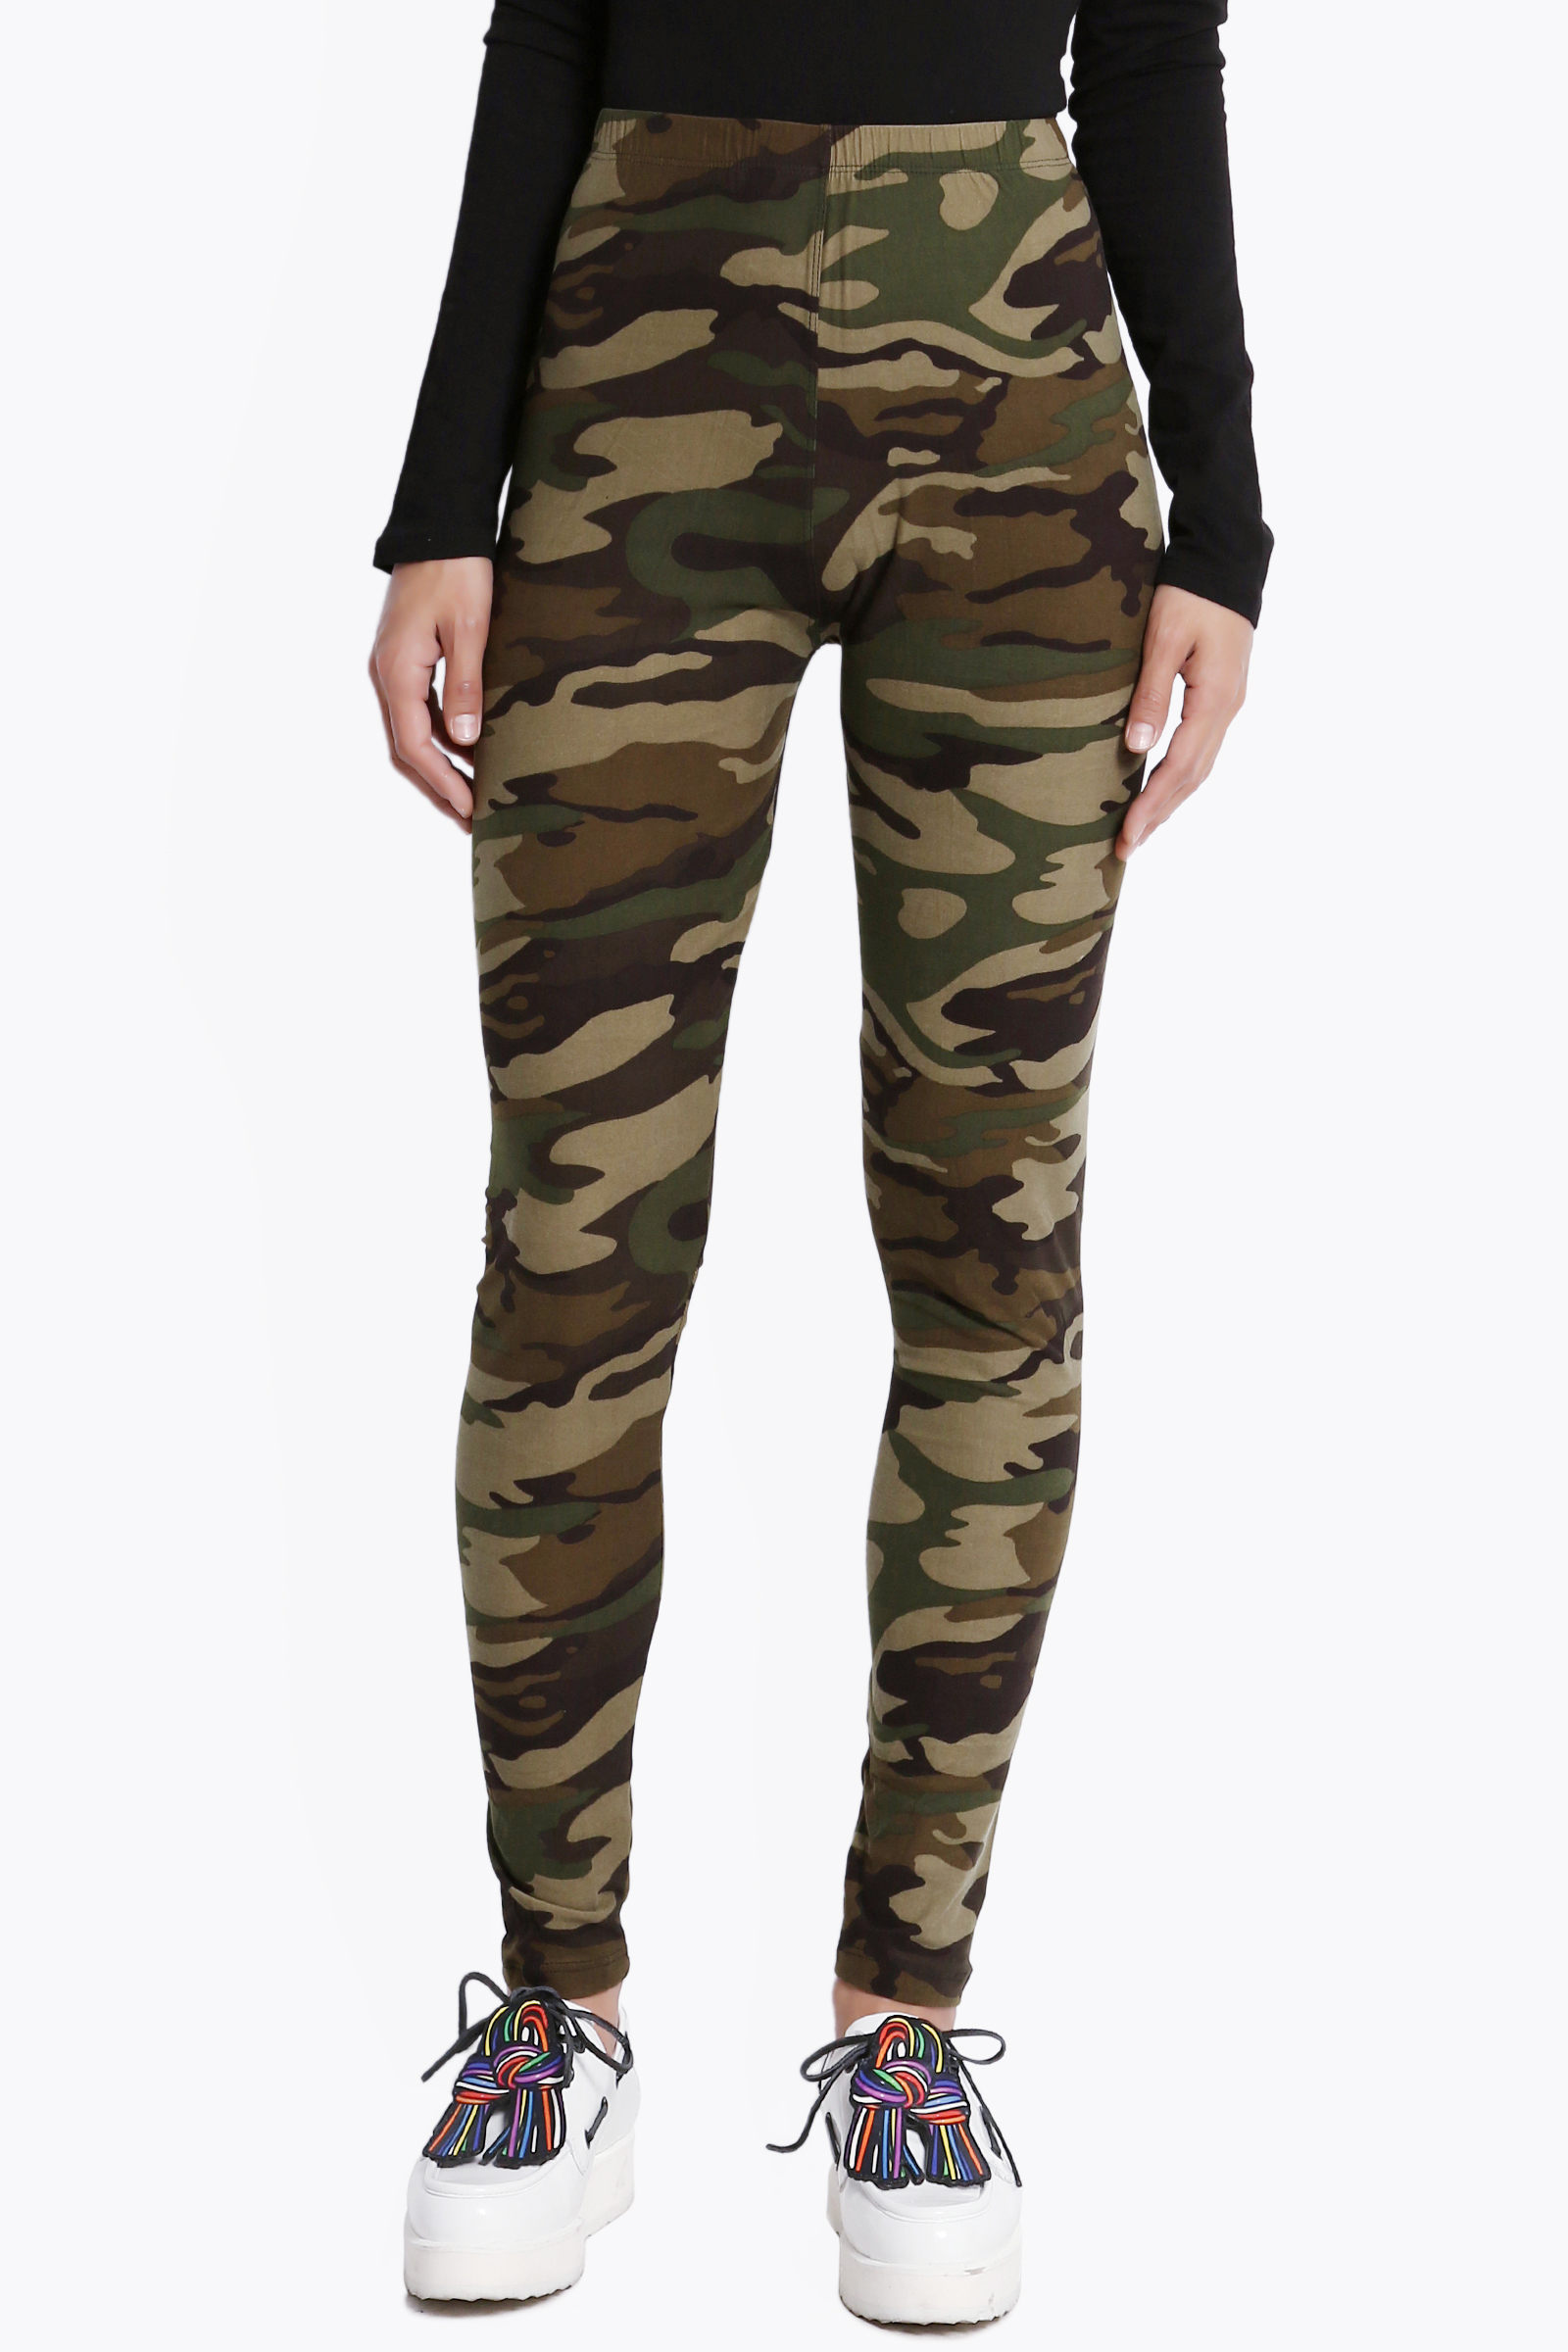 The Classic Camouflage Legging Nevers Goes Out of Style. what ever you want to call them, camouflage leggings, military, army or even combat leggings as they have been referred to at times, these women's leggings are time tested classic look that seem to always be on trend.